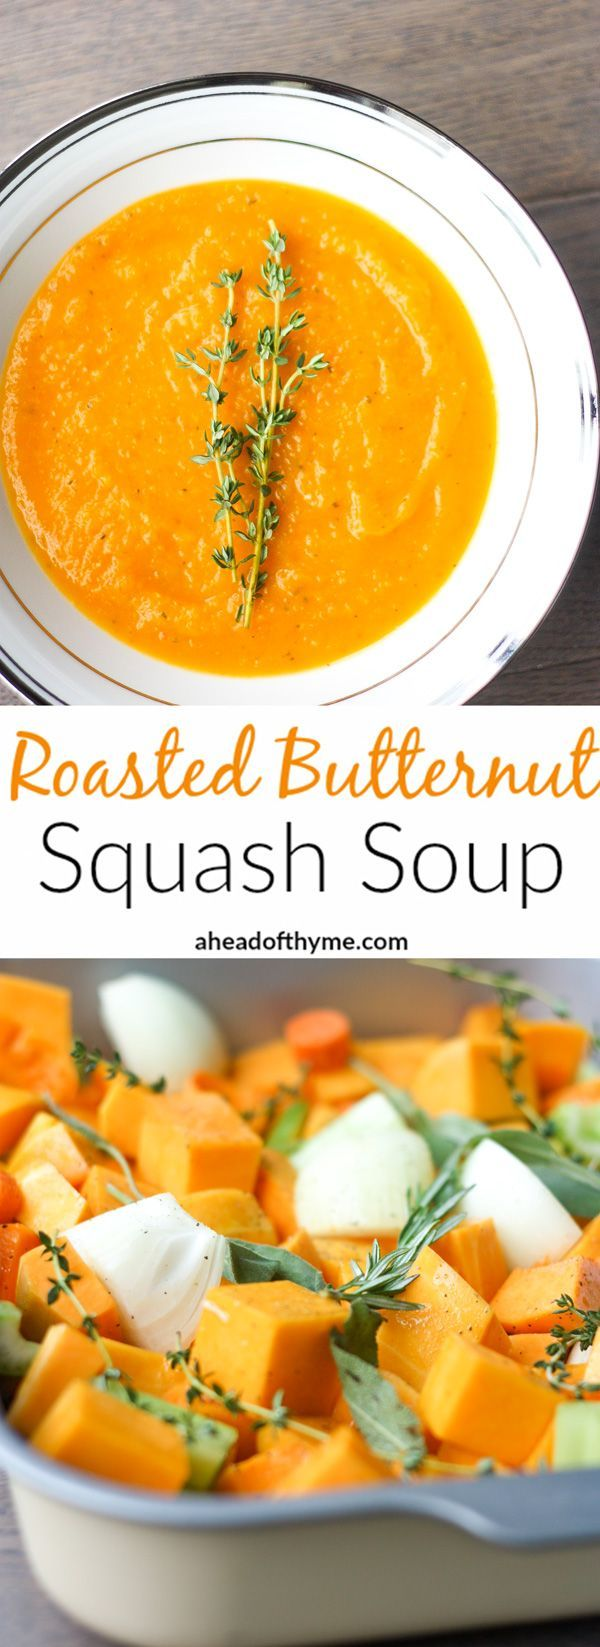 Roasted Butternut Squash Soup: This delicious roasted butternut squash soup sums up the taste of the holidays in one spoon. Rosemary, sage and thyme, need I say more? | http://aheadofthyme.com